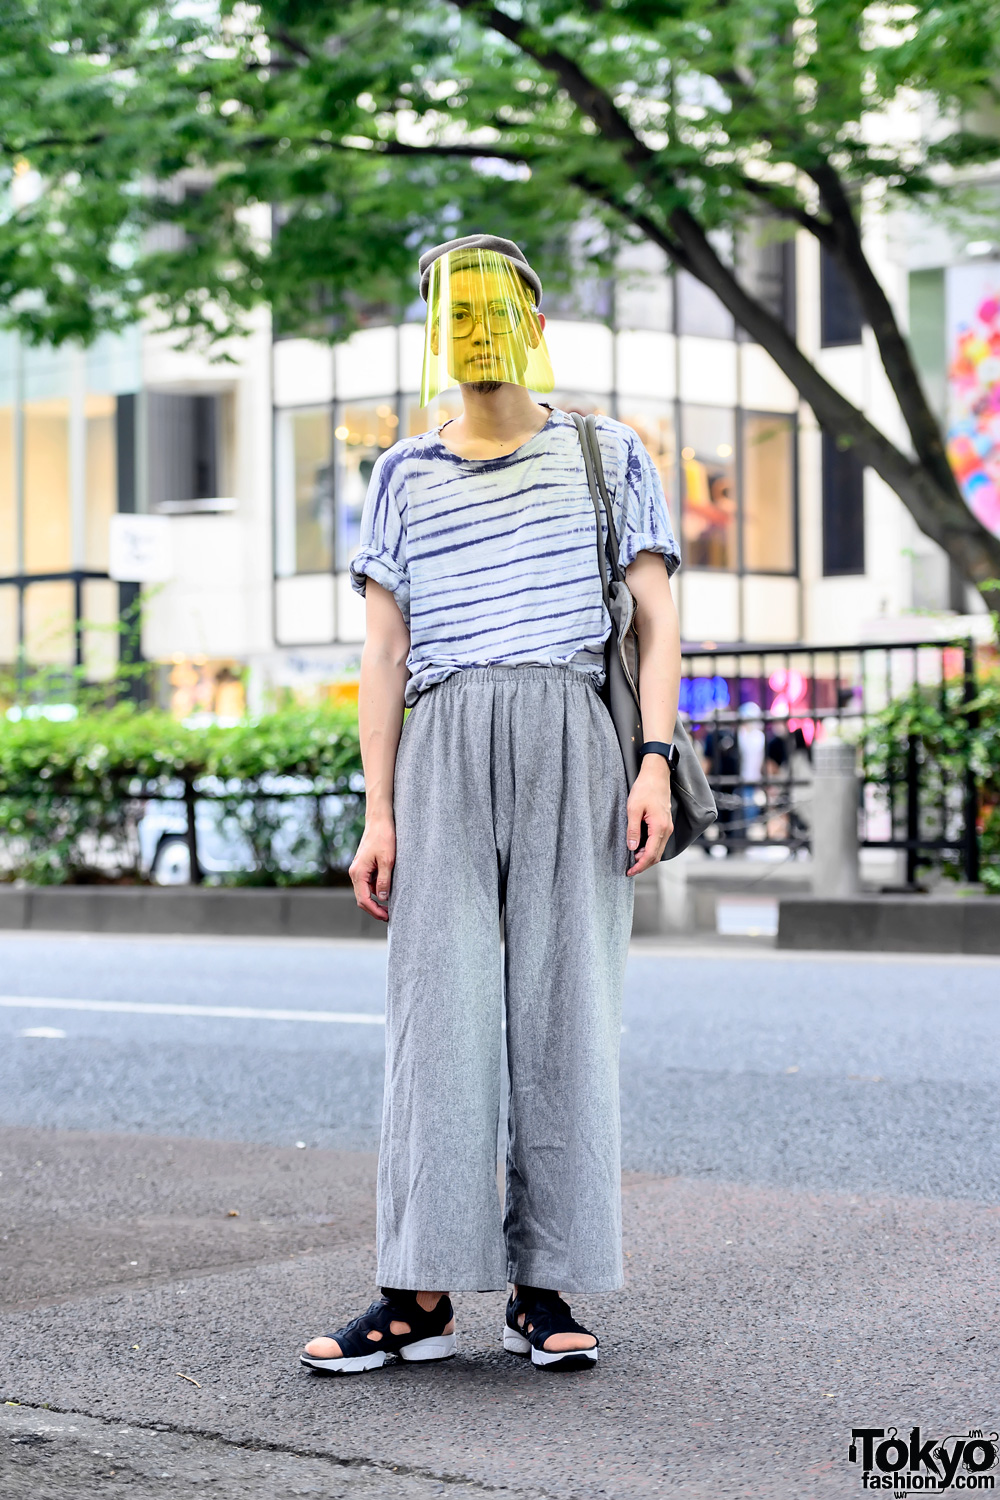 Face Shield & Sokkyou Vintage Fashion in Harajuku